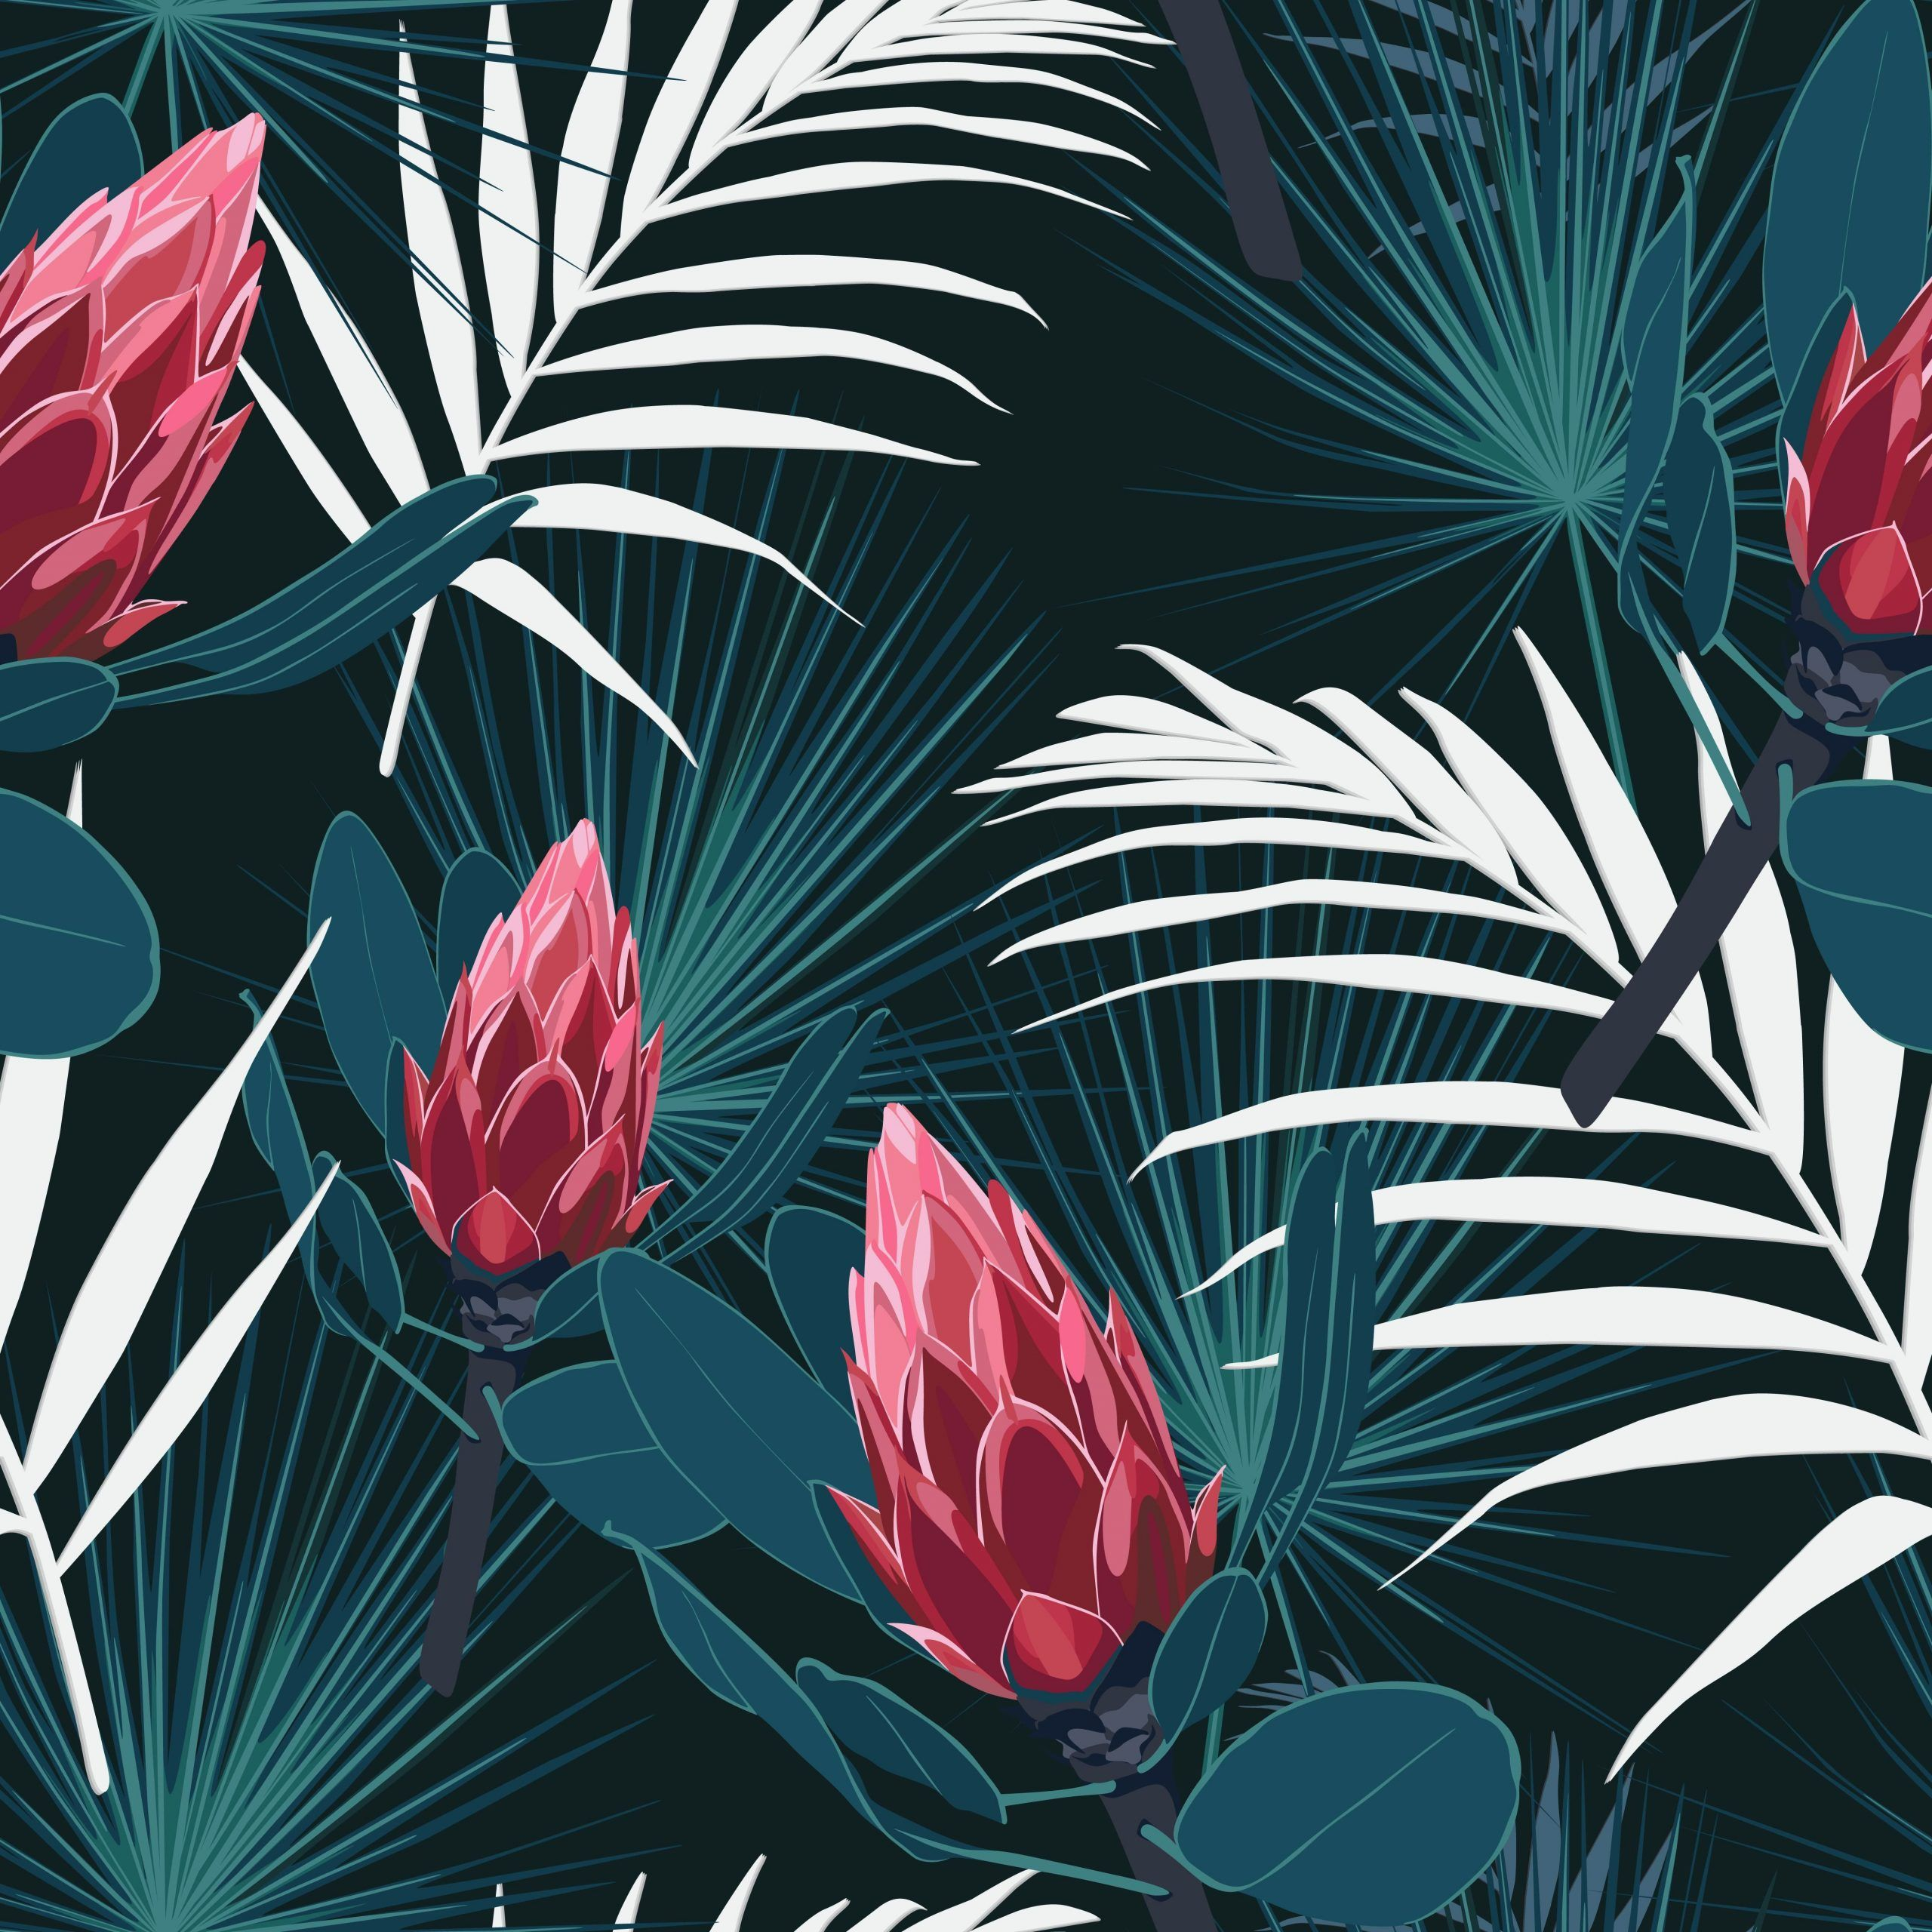 Seamless Tropical Pattern Vivid Tropic Foliage With Palm Leaves Red Protea Fl Foliage Leaves Palm Patt In 2020 Tropical Artwork Protea Flower Tropical Pattern